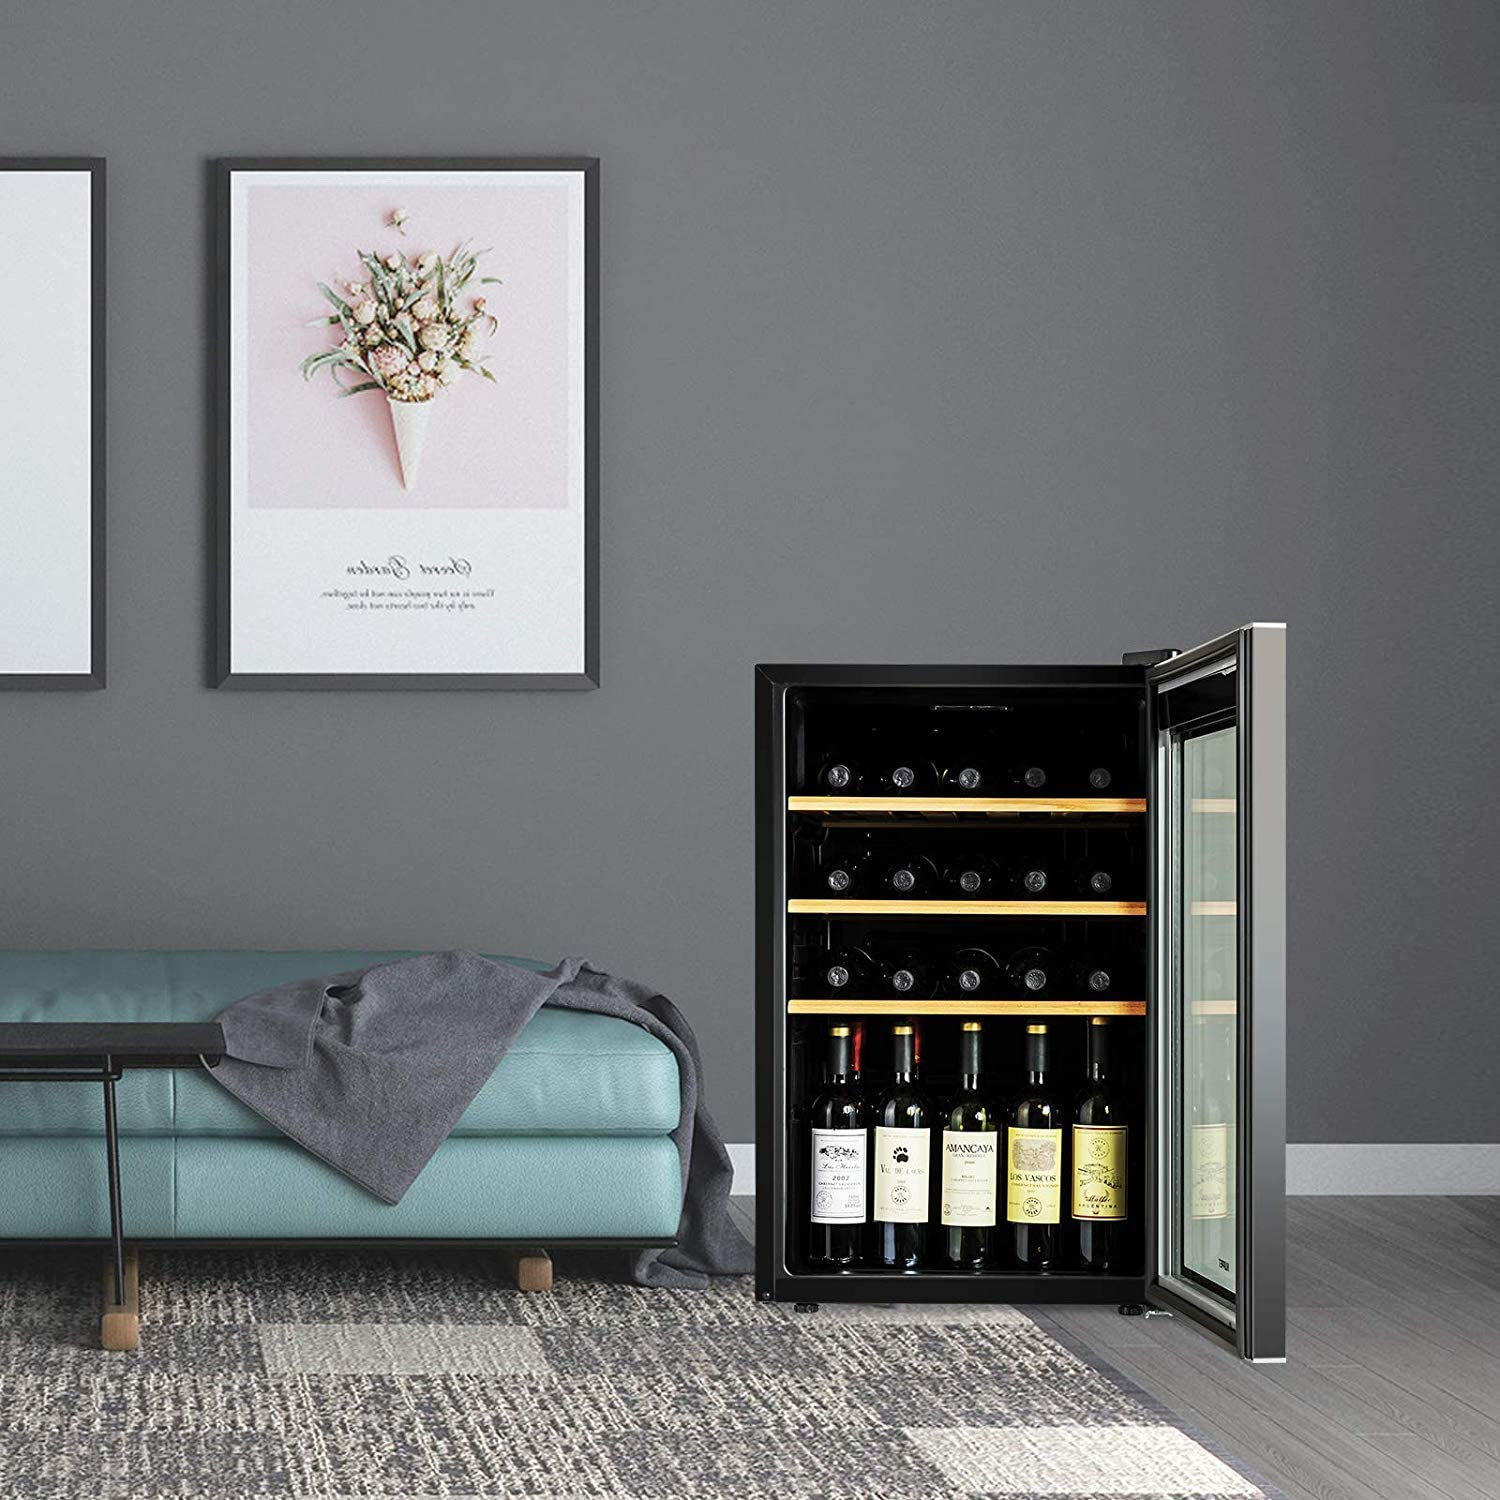 KUPPET Compressor 36 Bottle Wine Cooler, Counter Top Wine Cellar/Chiller, Wine Refrigerator Single Zone with Touch Control, Quiet Operation Fridge ...